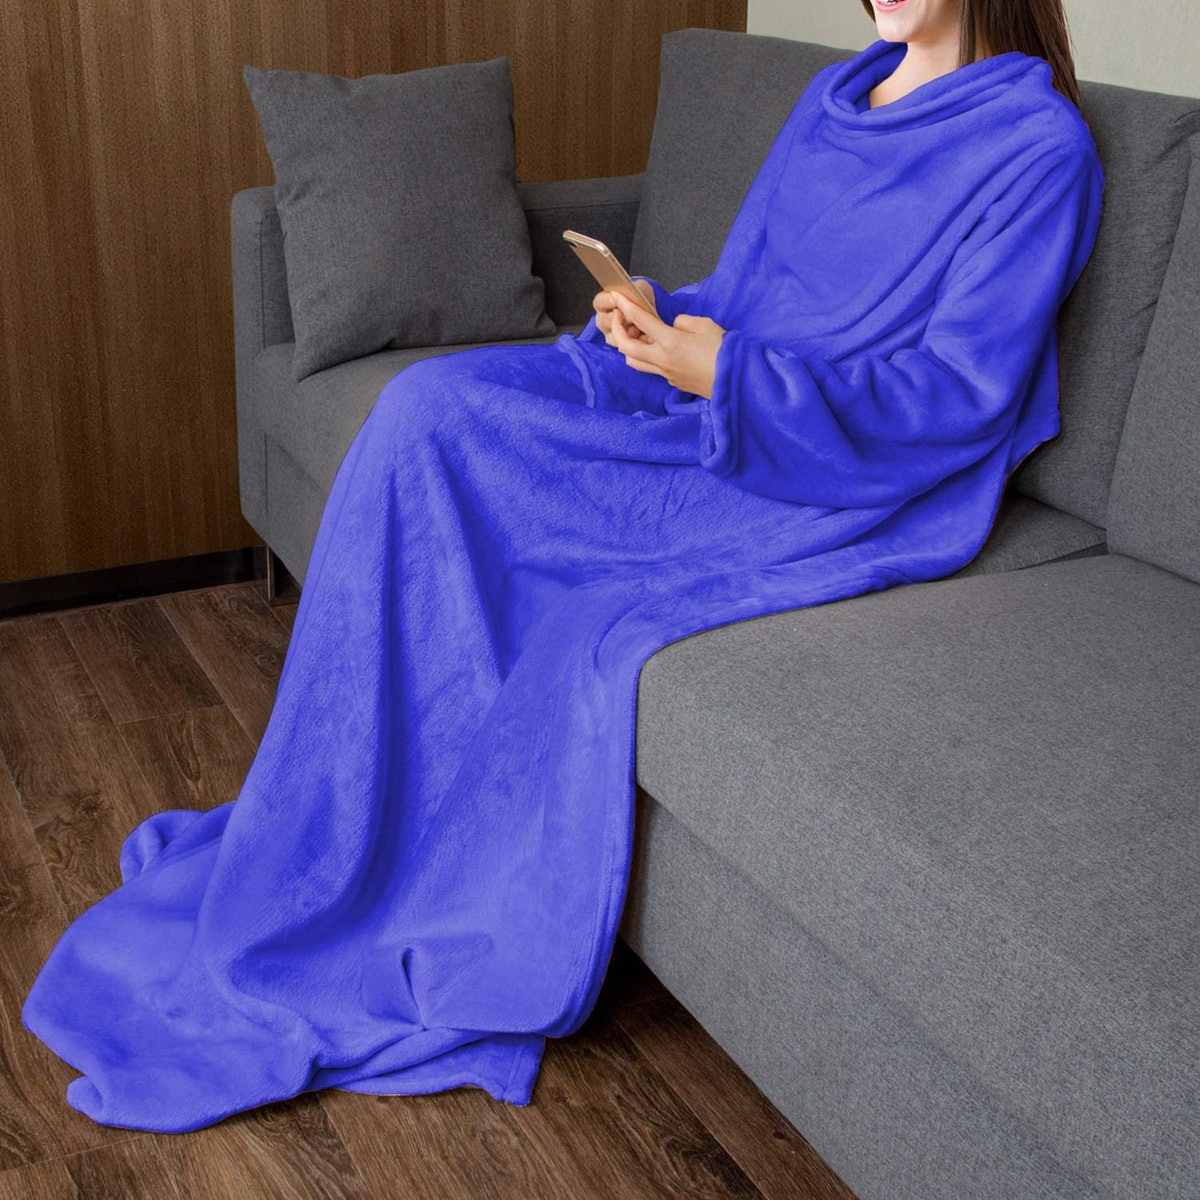 Catalonia Wearable Blanket with Sleeves